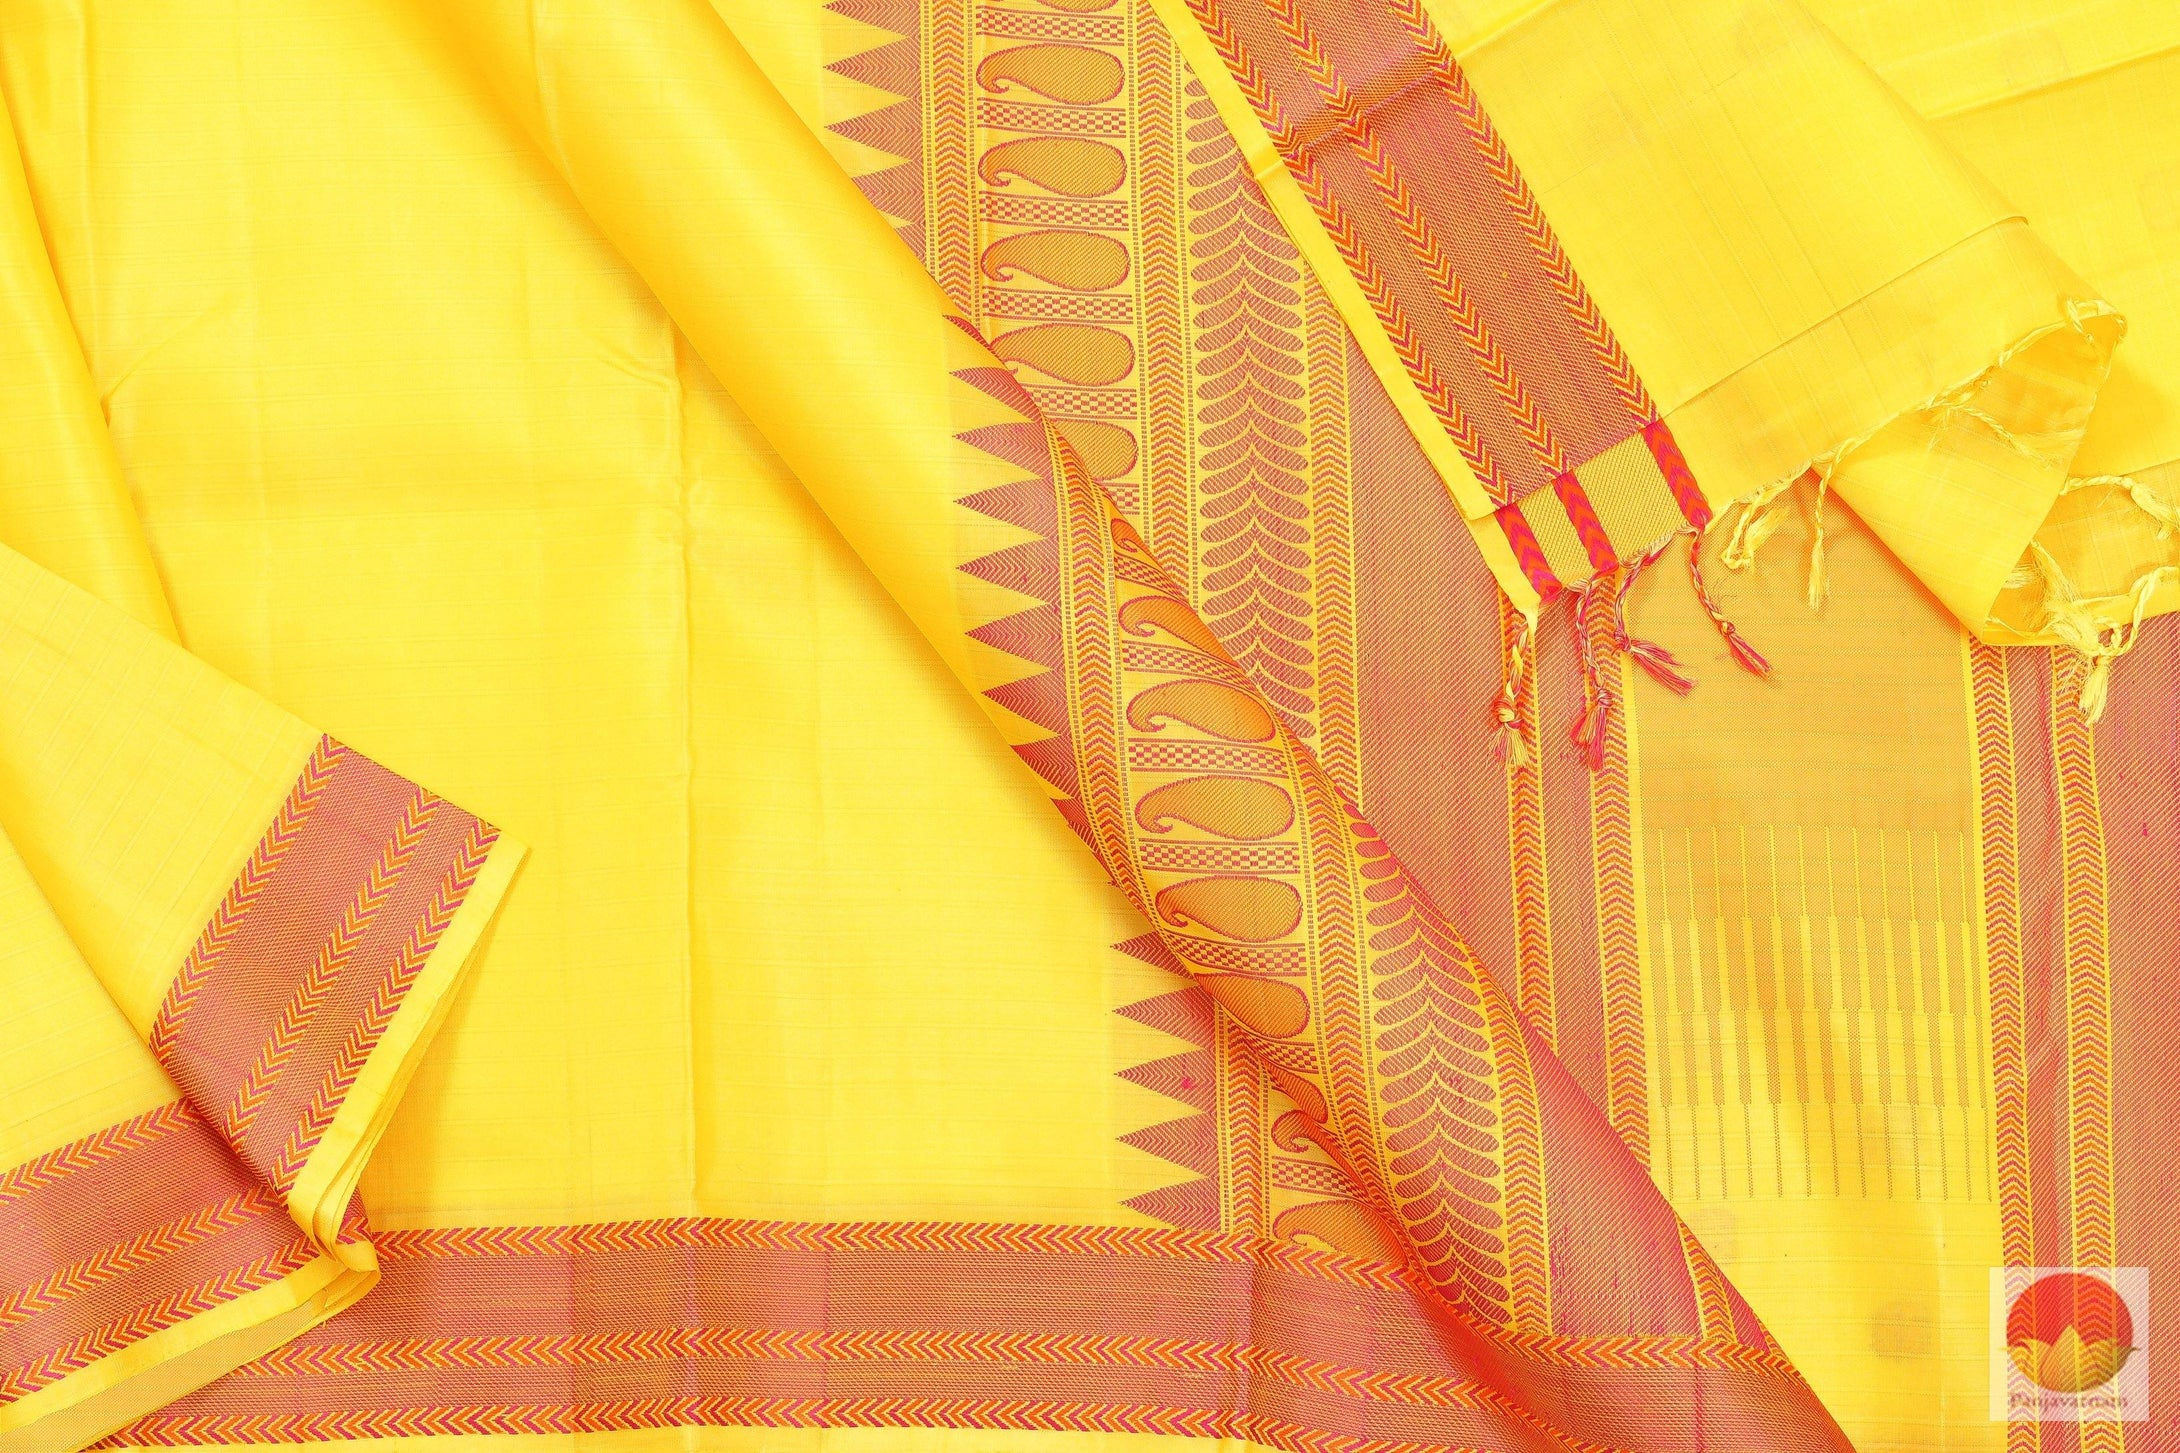 Kanchipuram Silk Saree - Handwoven Pure Silk - No Zari - PV NZ 4604